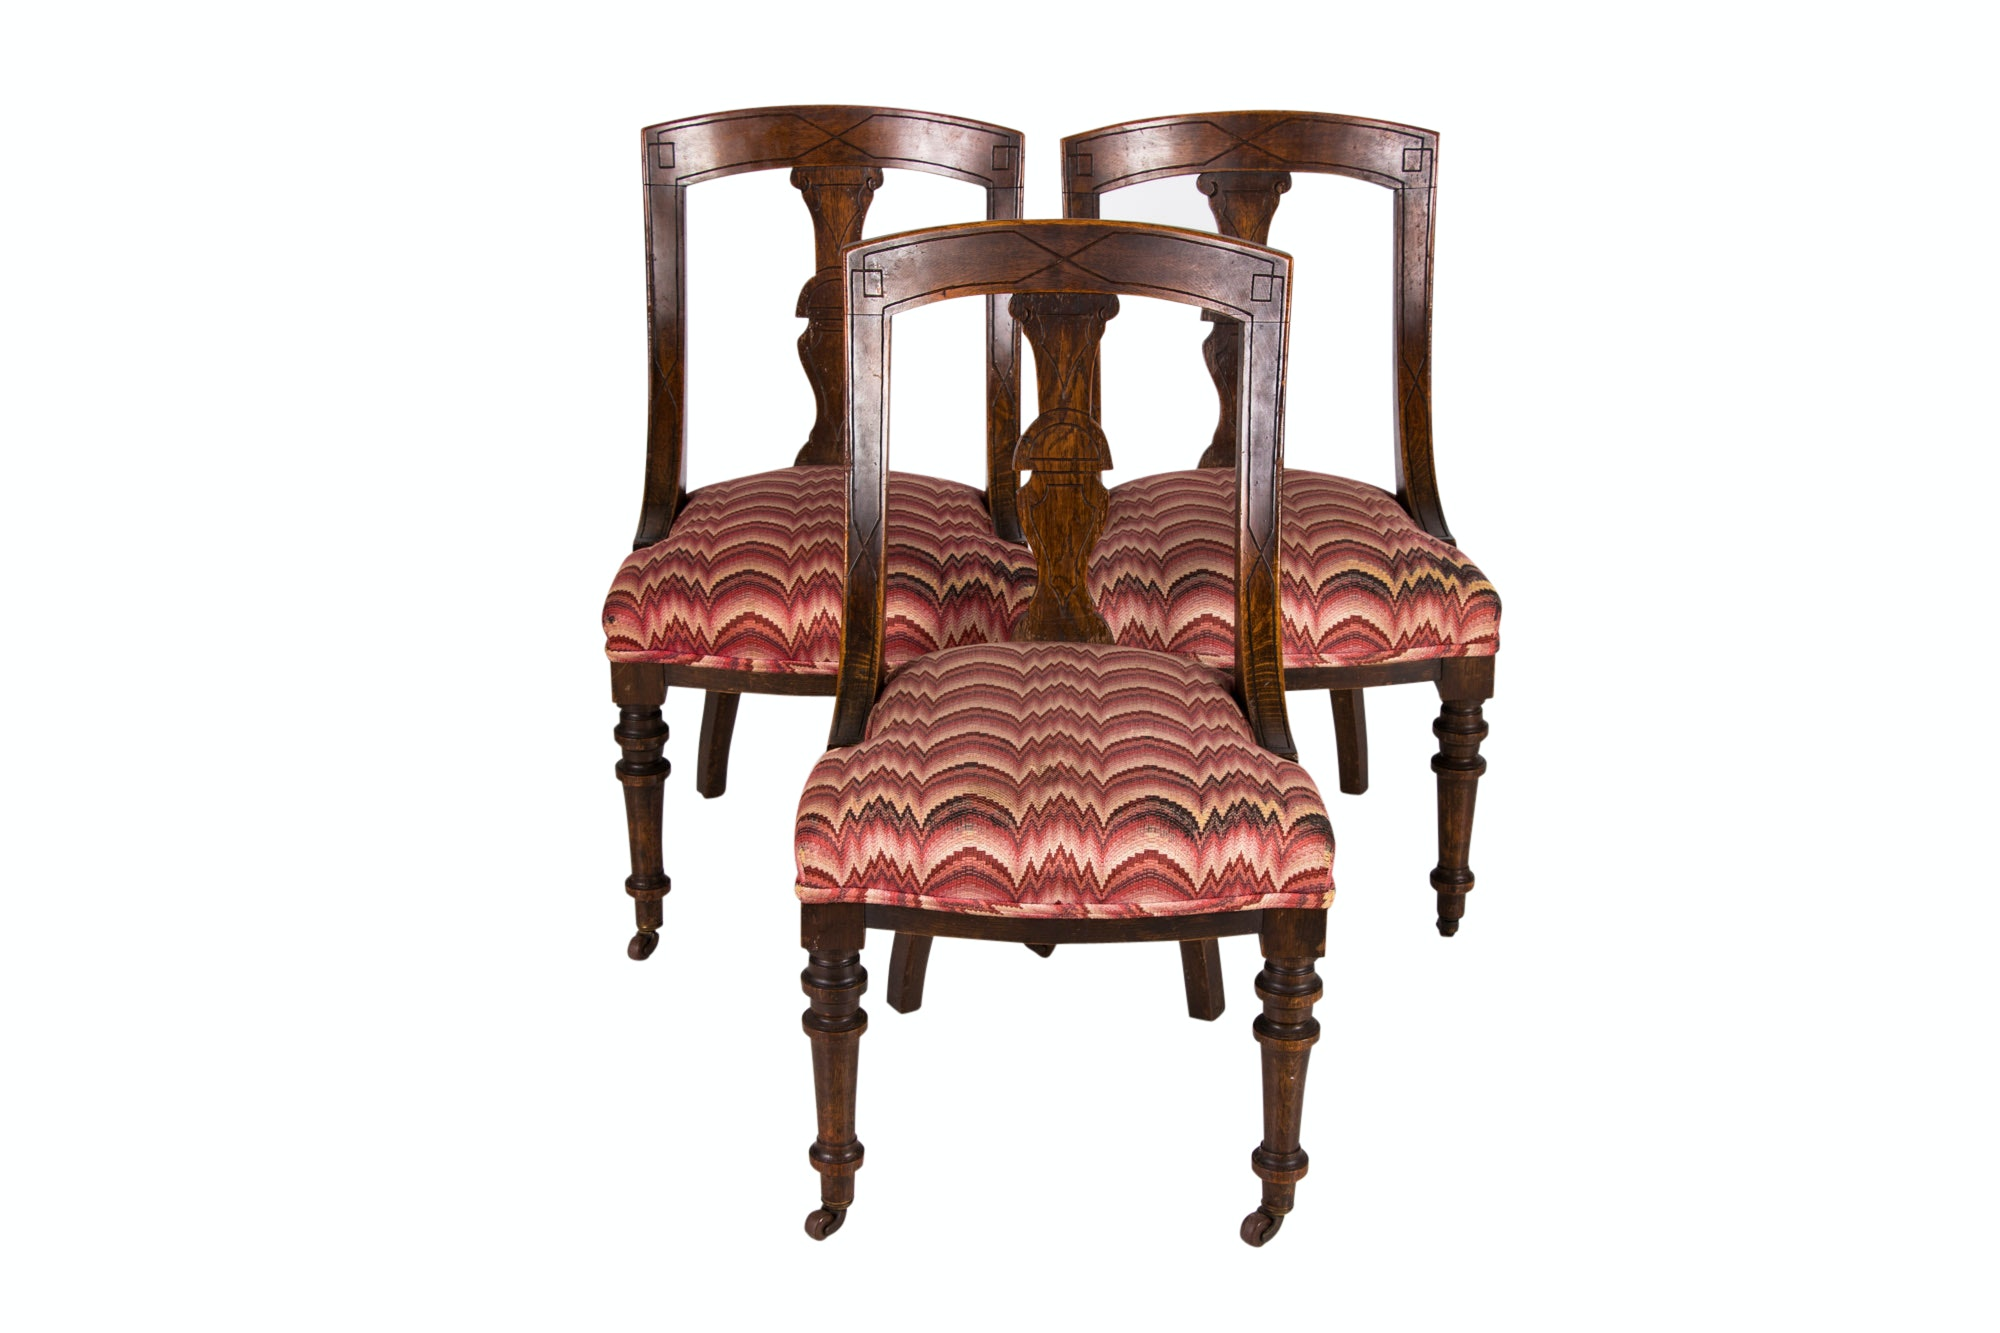 Three Victorian Carved Oak Dining Side Chairs, Circa 1870